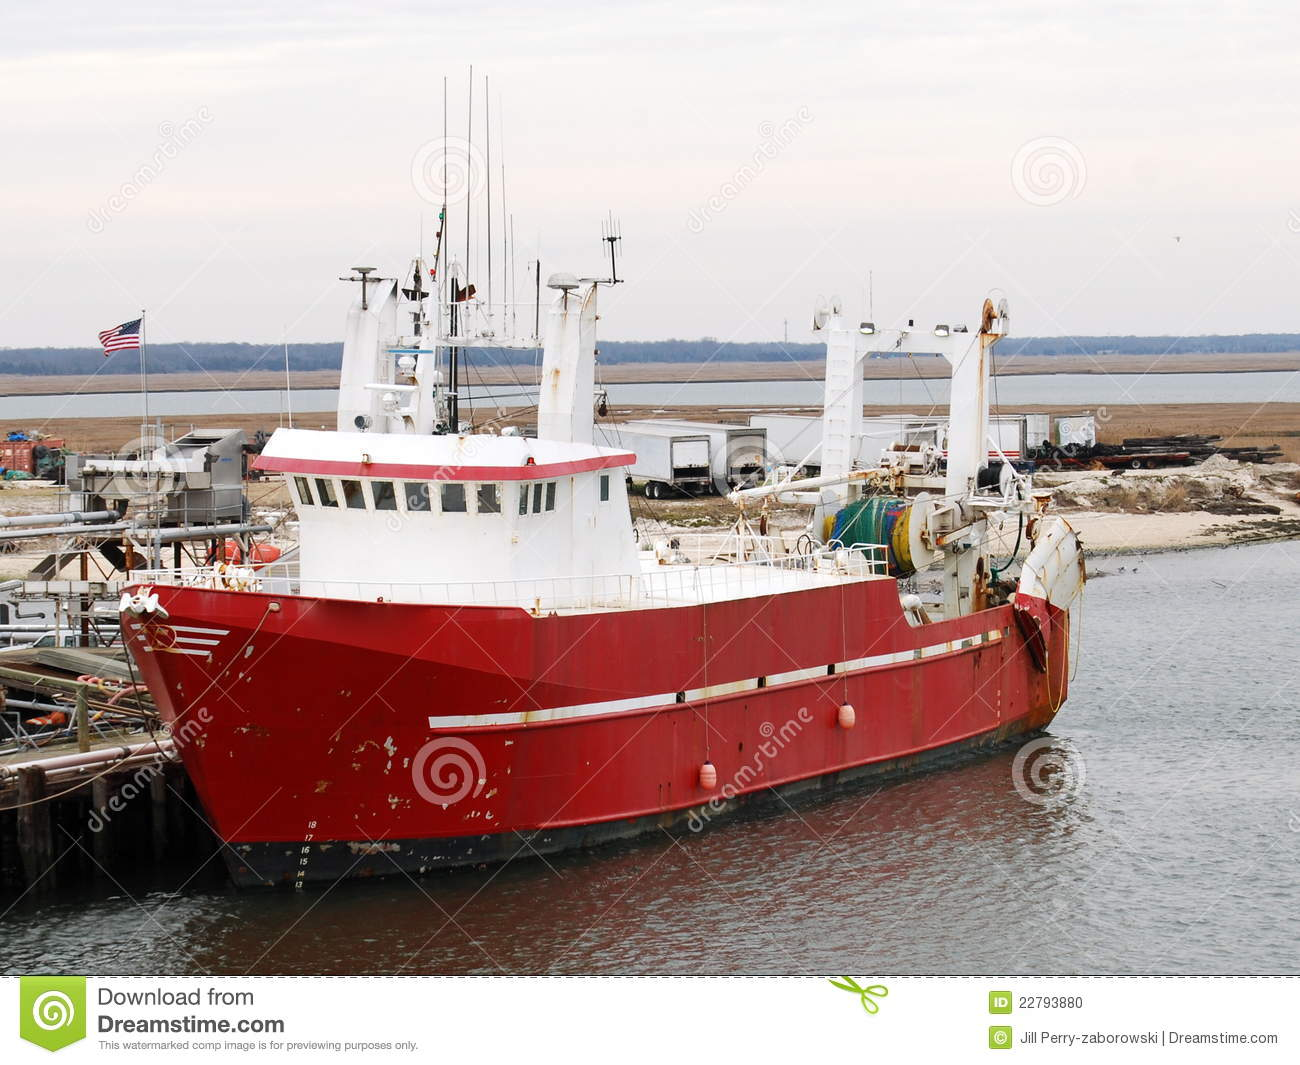 ... & white commercial fishing, scallop, clam boat docked on the water